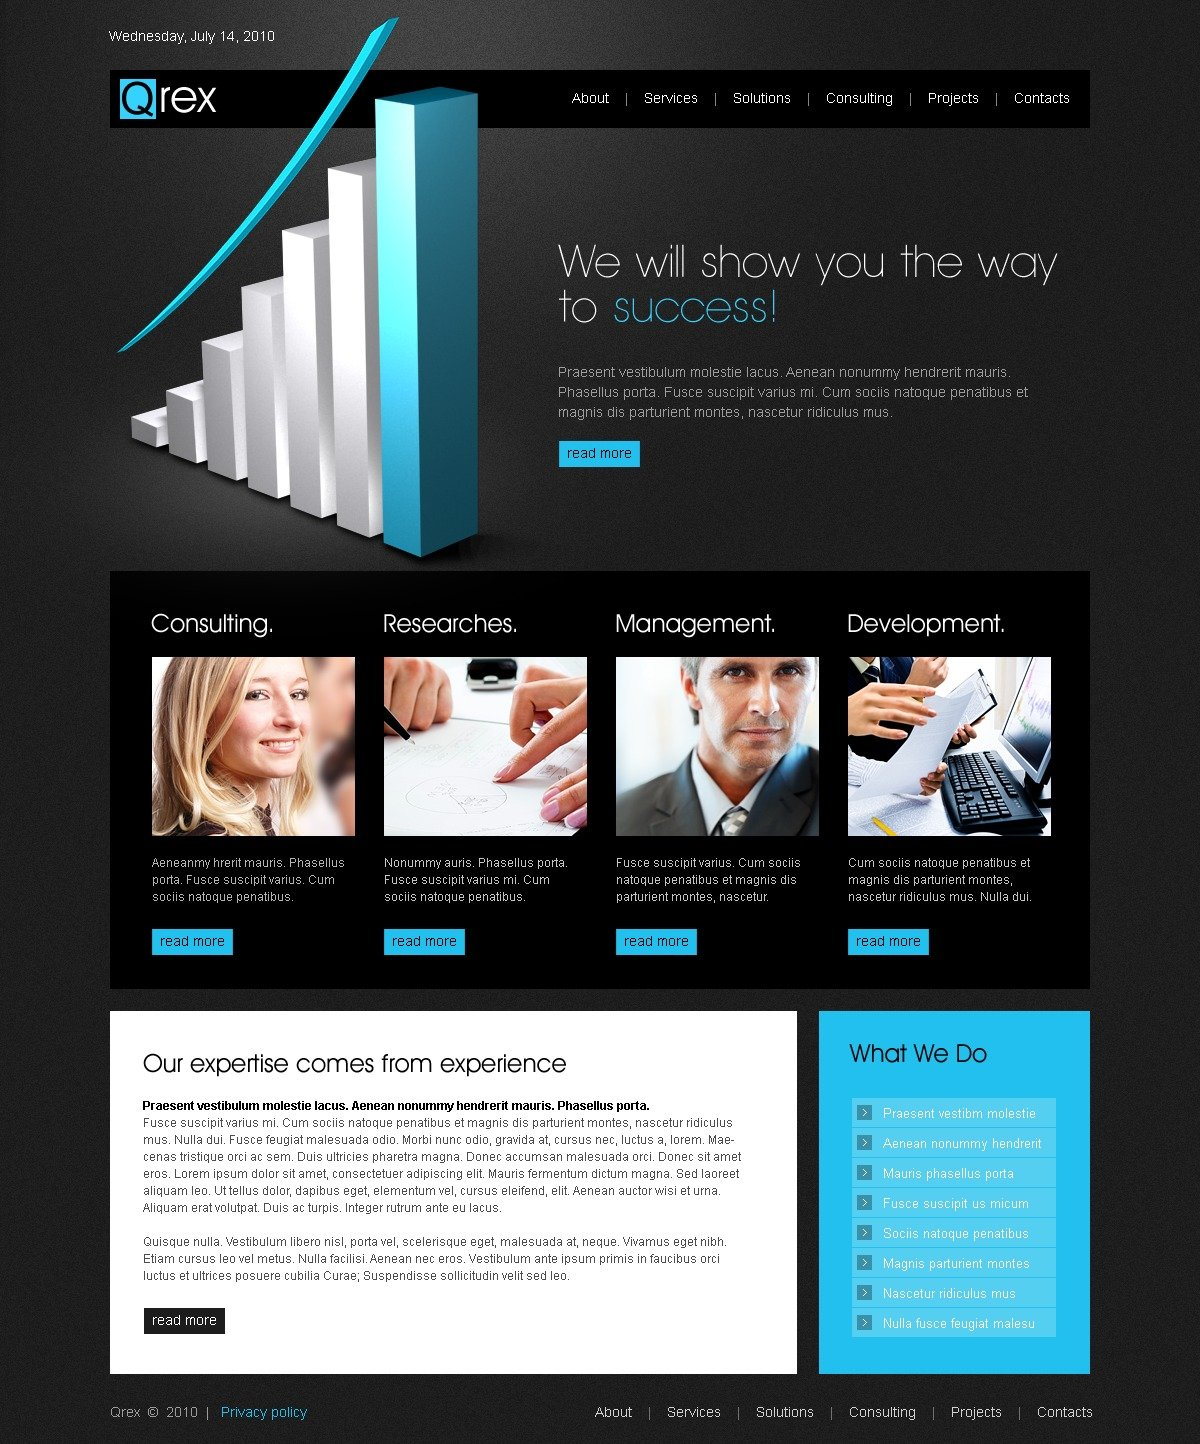 The Qrex Business Company PSD Design 54376, one of the best PSD templates of its kind (business, flash 8, wide), also known as qrex business company PSD template, corporate solutions PSD template, innovations PSD template, contacts PSD template, service PSD template, support PSD template, information dealer PSD template, stocks PSD template, team PSD template, success PSD template, money PSD template, marketing PSD template, director PSD template, manager PSD template, analytics PSD template, planning PSD template, limited PSD template, office PSD template, sales and related with qrex business company, corporate solutions, innovations, contacts, service, support, information dealer, stocks, team, success, money, marketing, director, manager, analytics, planning, limited, office, sales, etc.